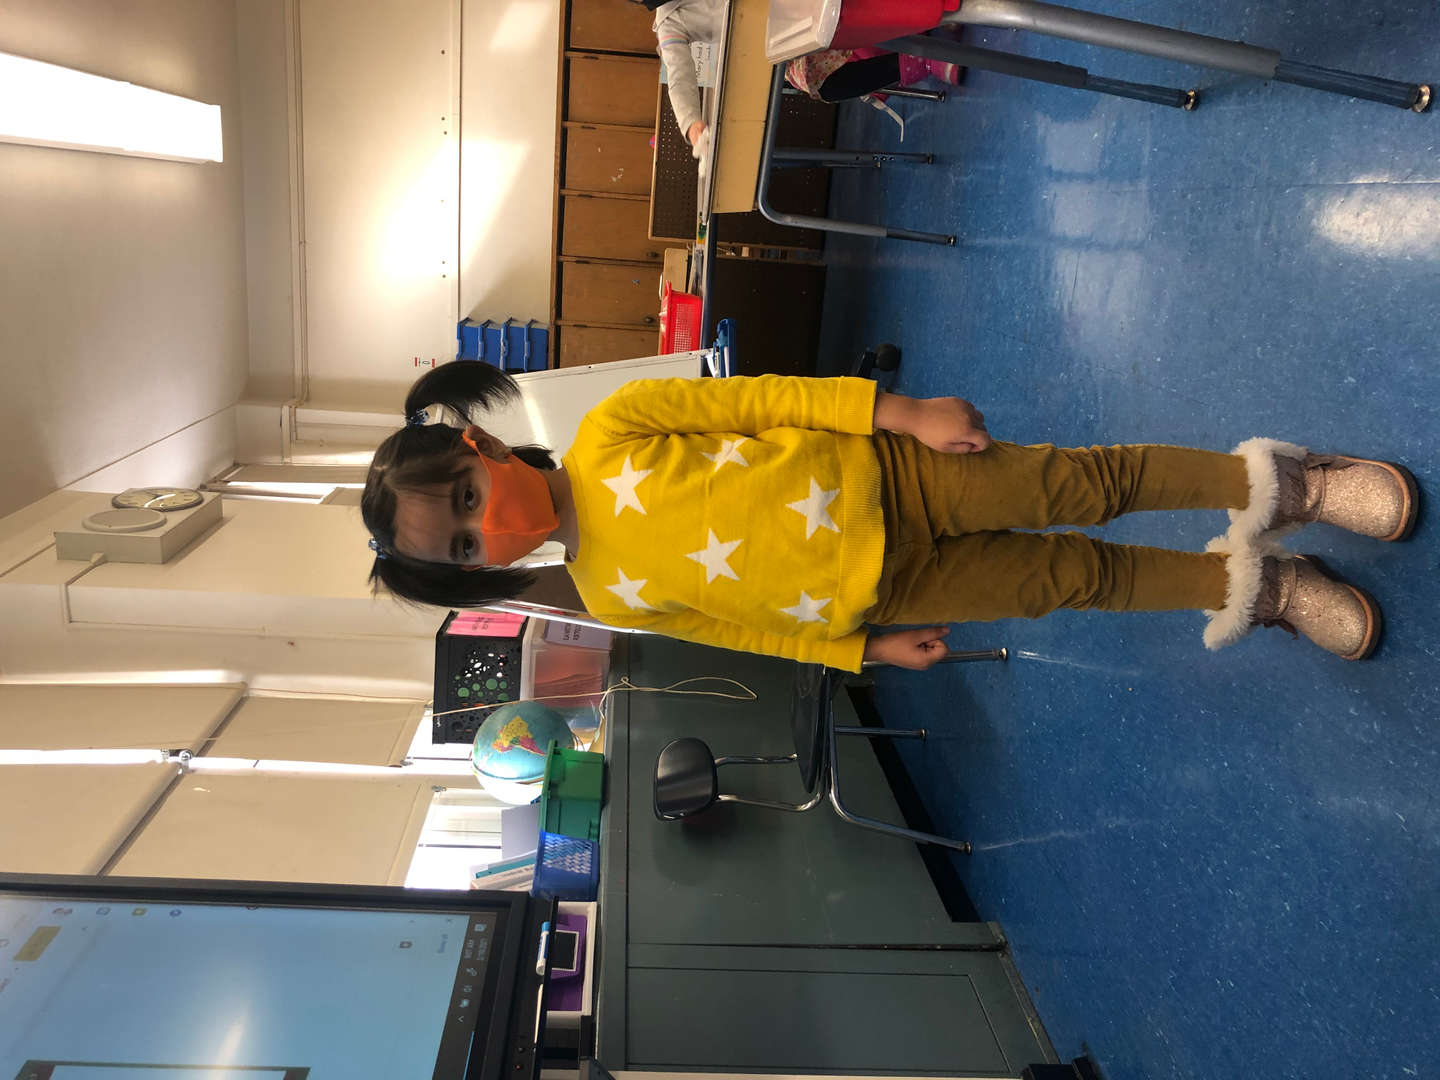 student wears yellow with white dots